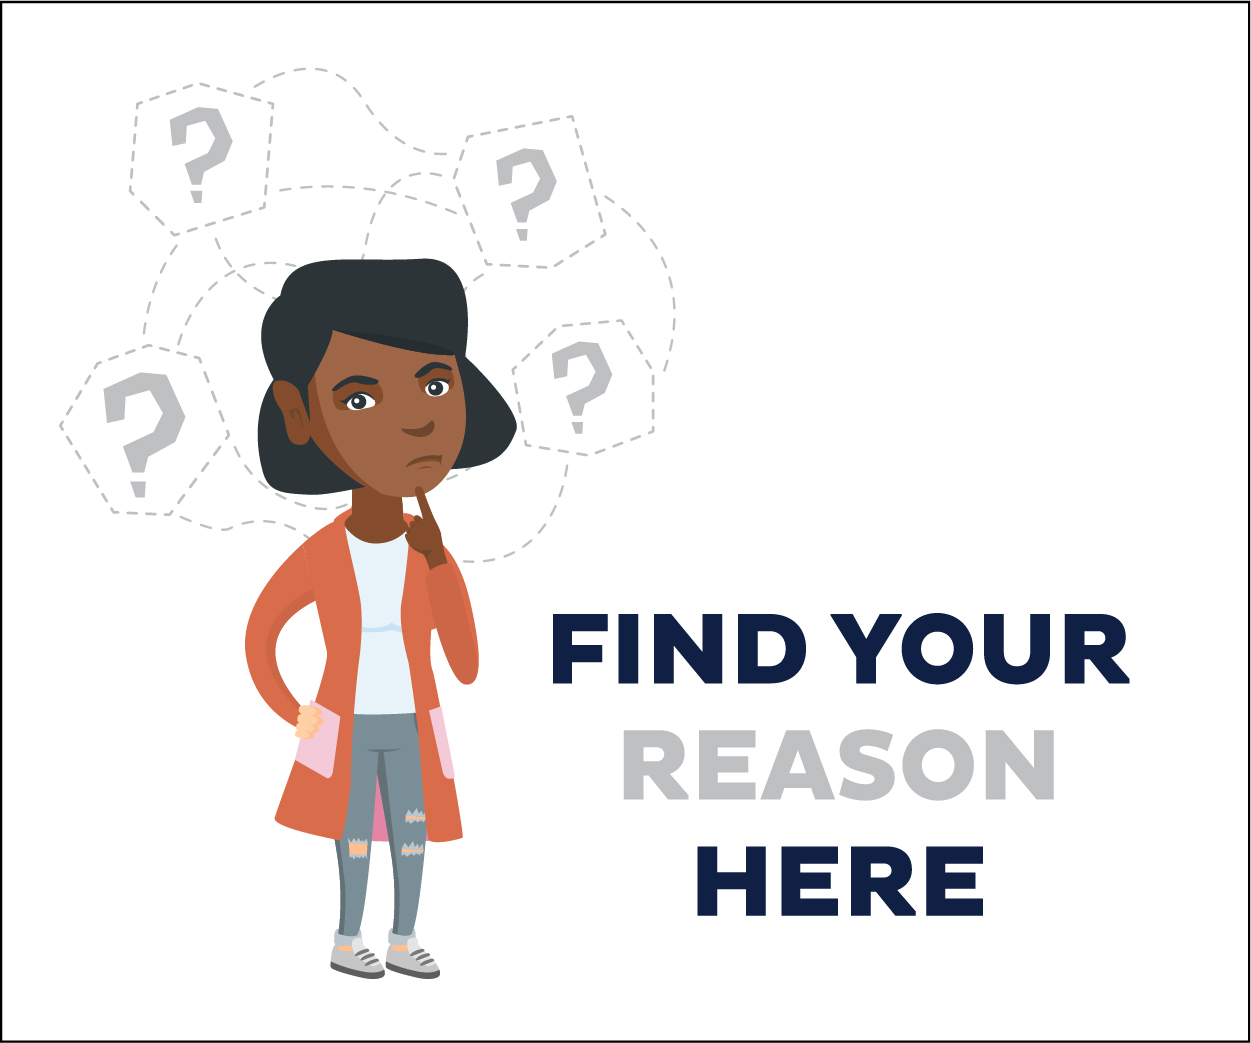 Image of woman thinking with Find Your Reason Here in text to the side